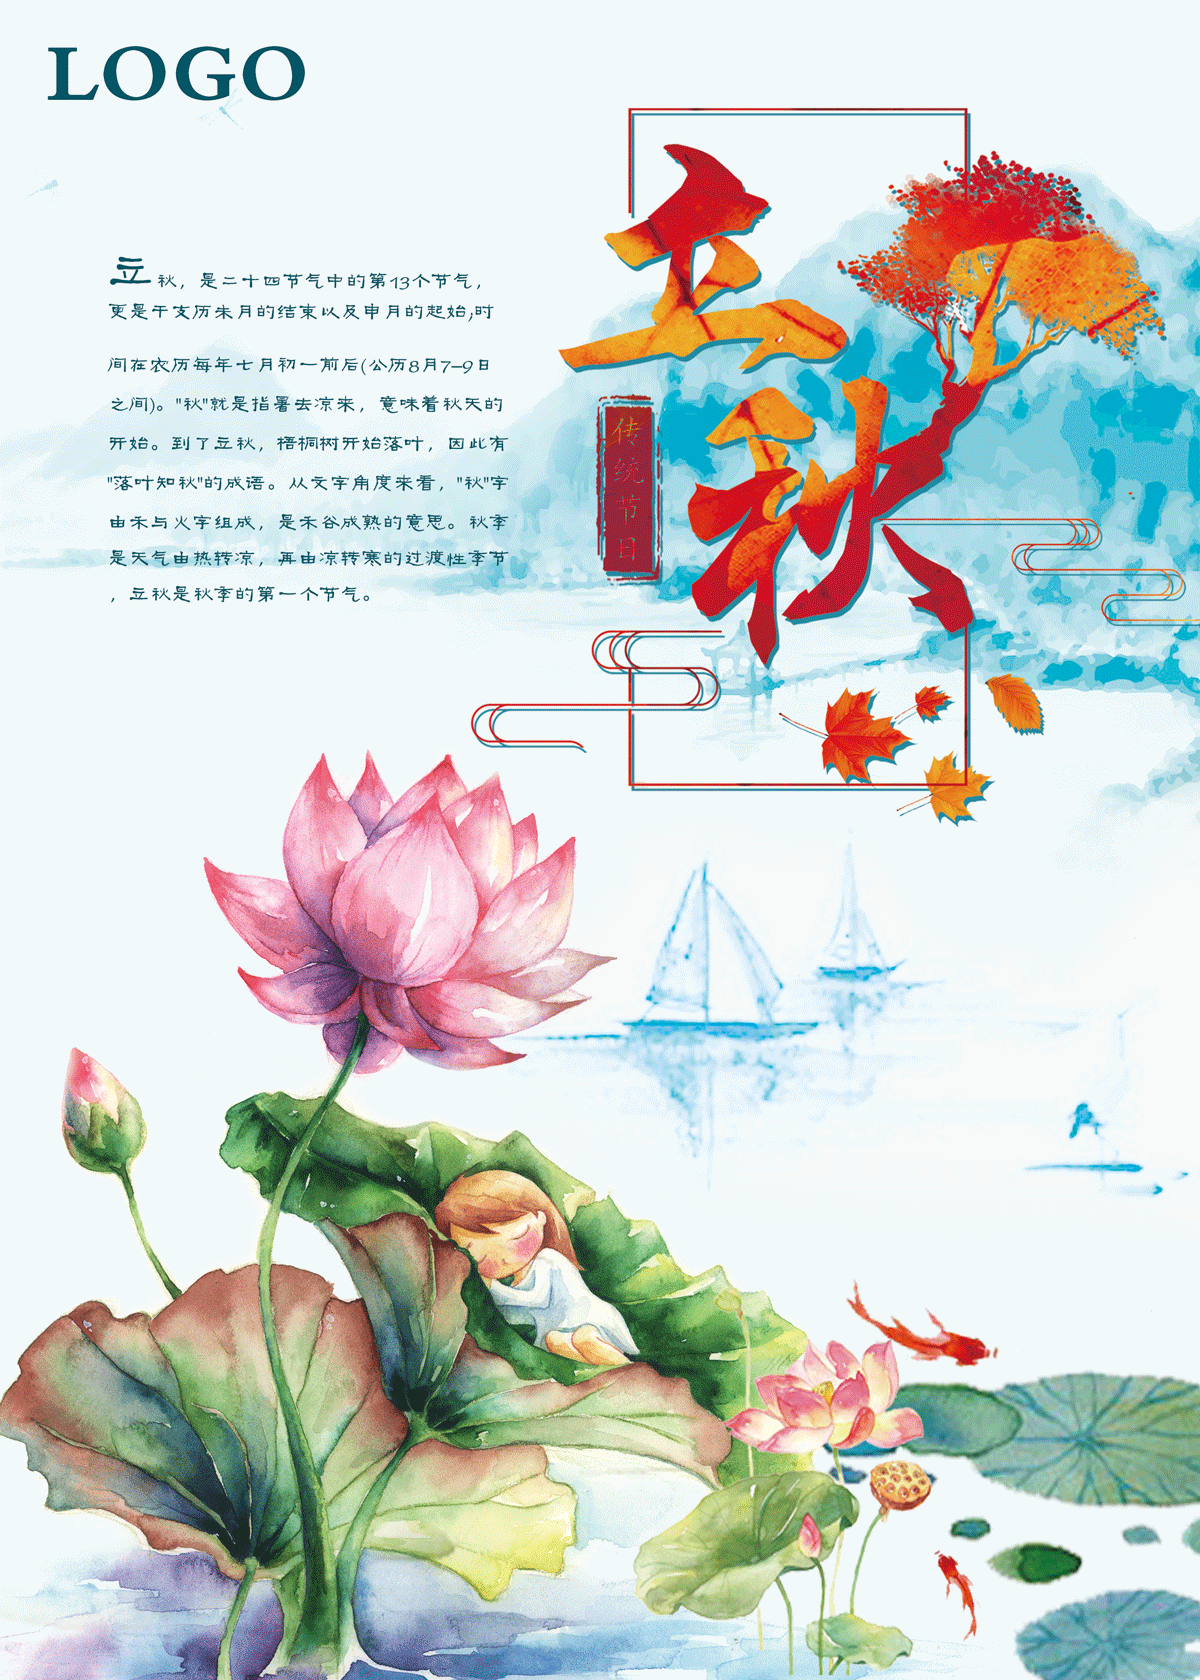 chinesefontdesign.com 2017 08 09 12 20 08 415397 Autumn in China  China PSD File Free Download